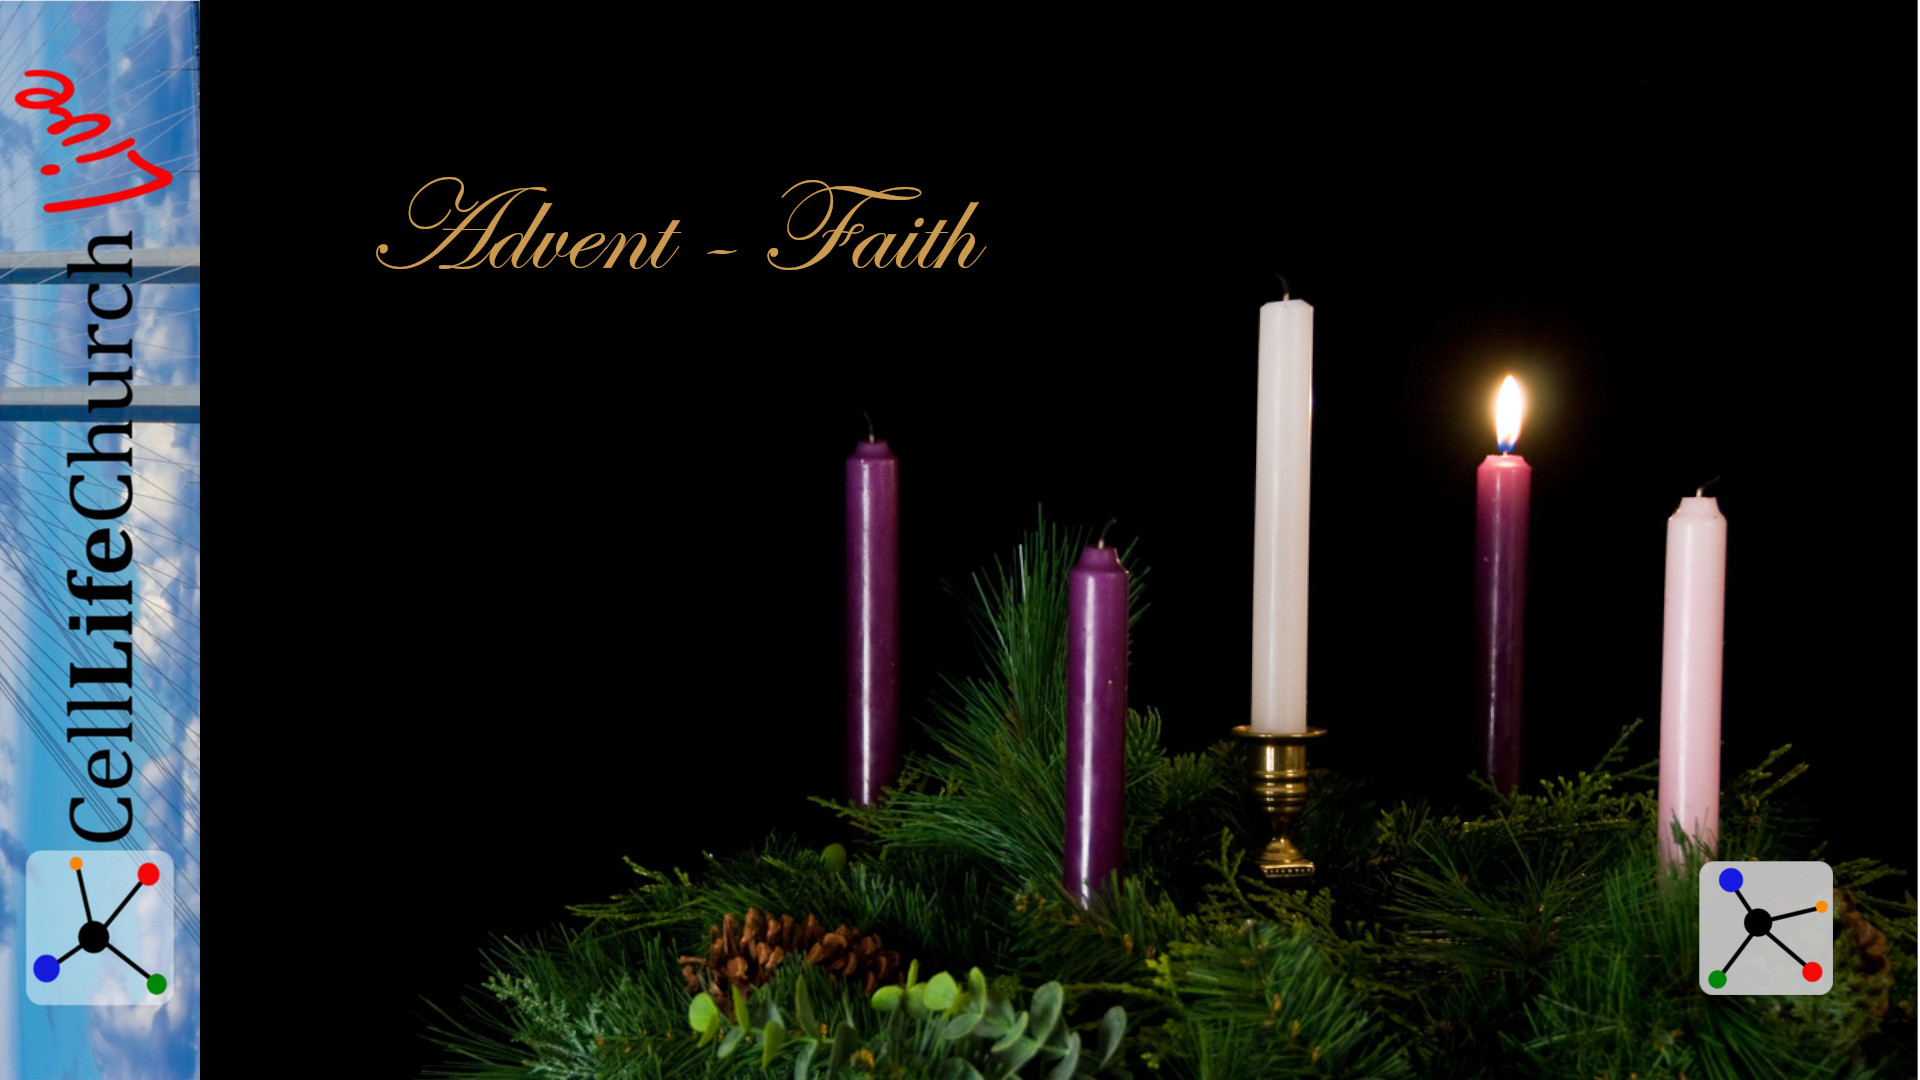 Advent - Faith